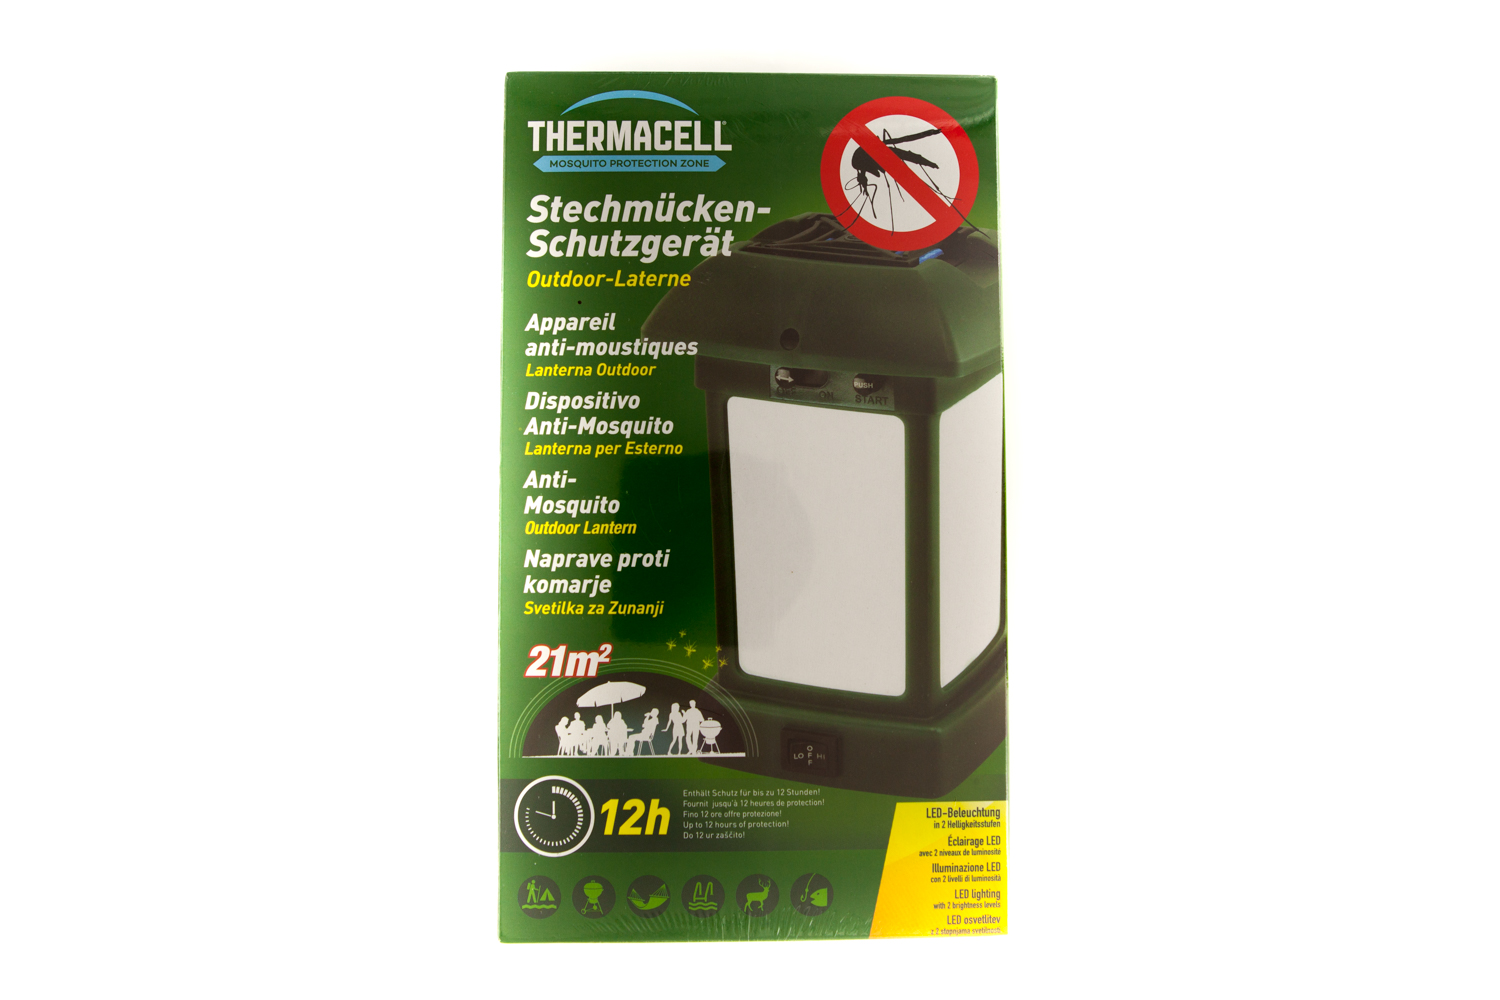 Thermacell MR-9L